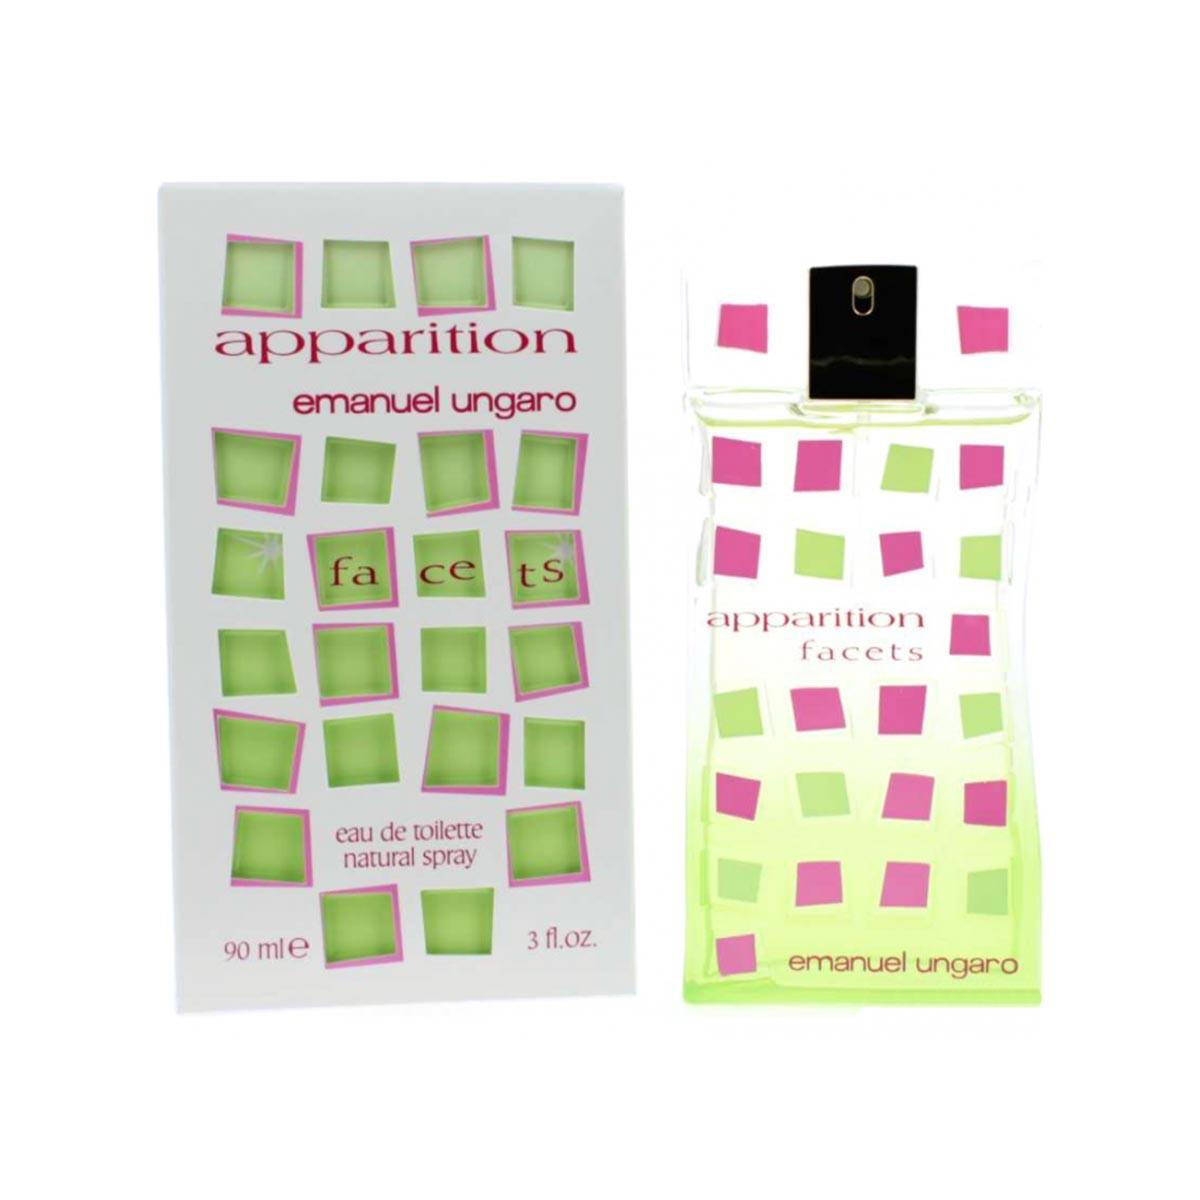 Emanuel ungaro fragrances Apparition Facets Eau De Toilette 90ml